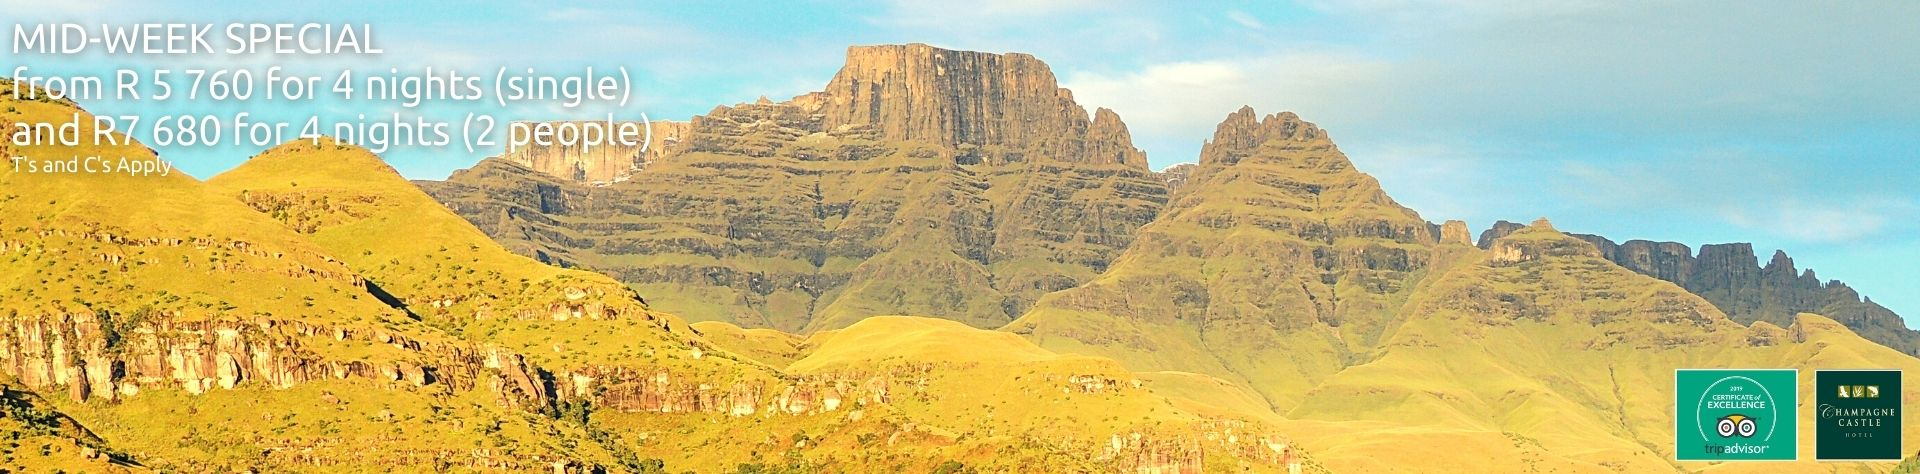 mid-week special in the drakensberg